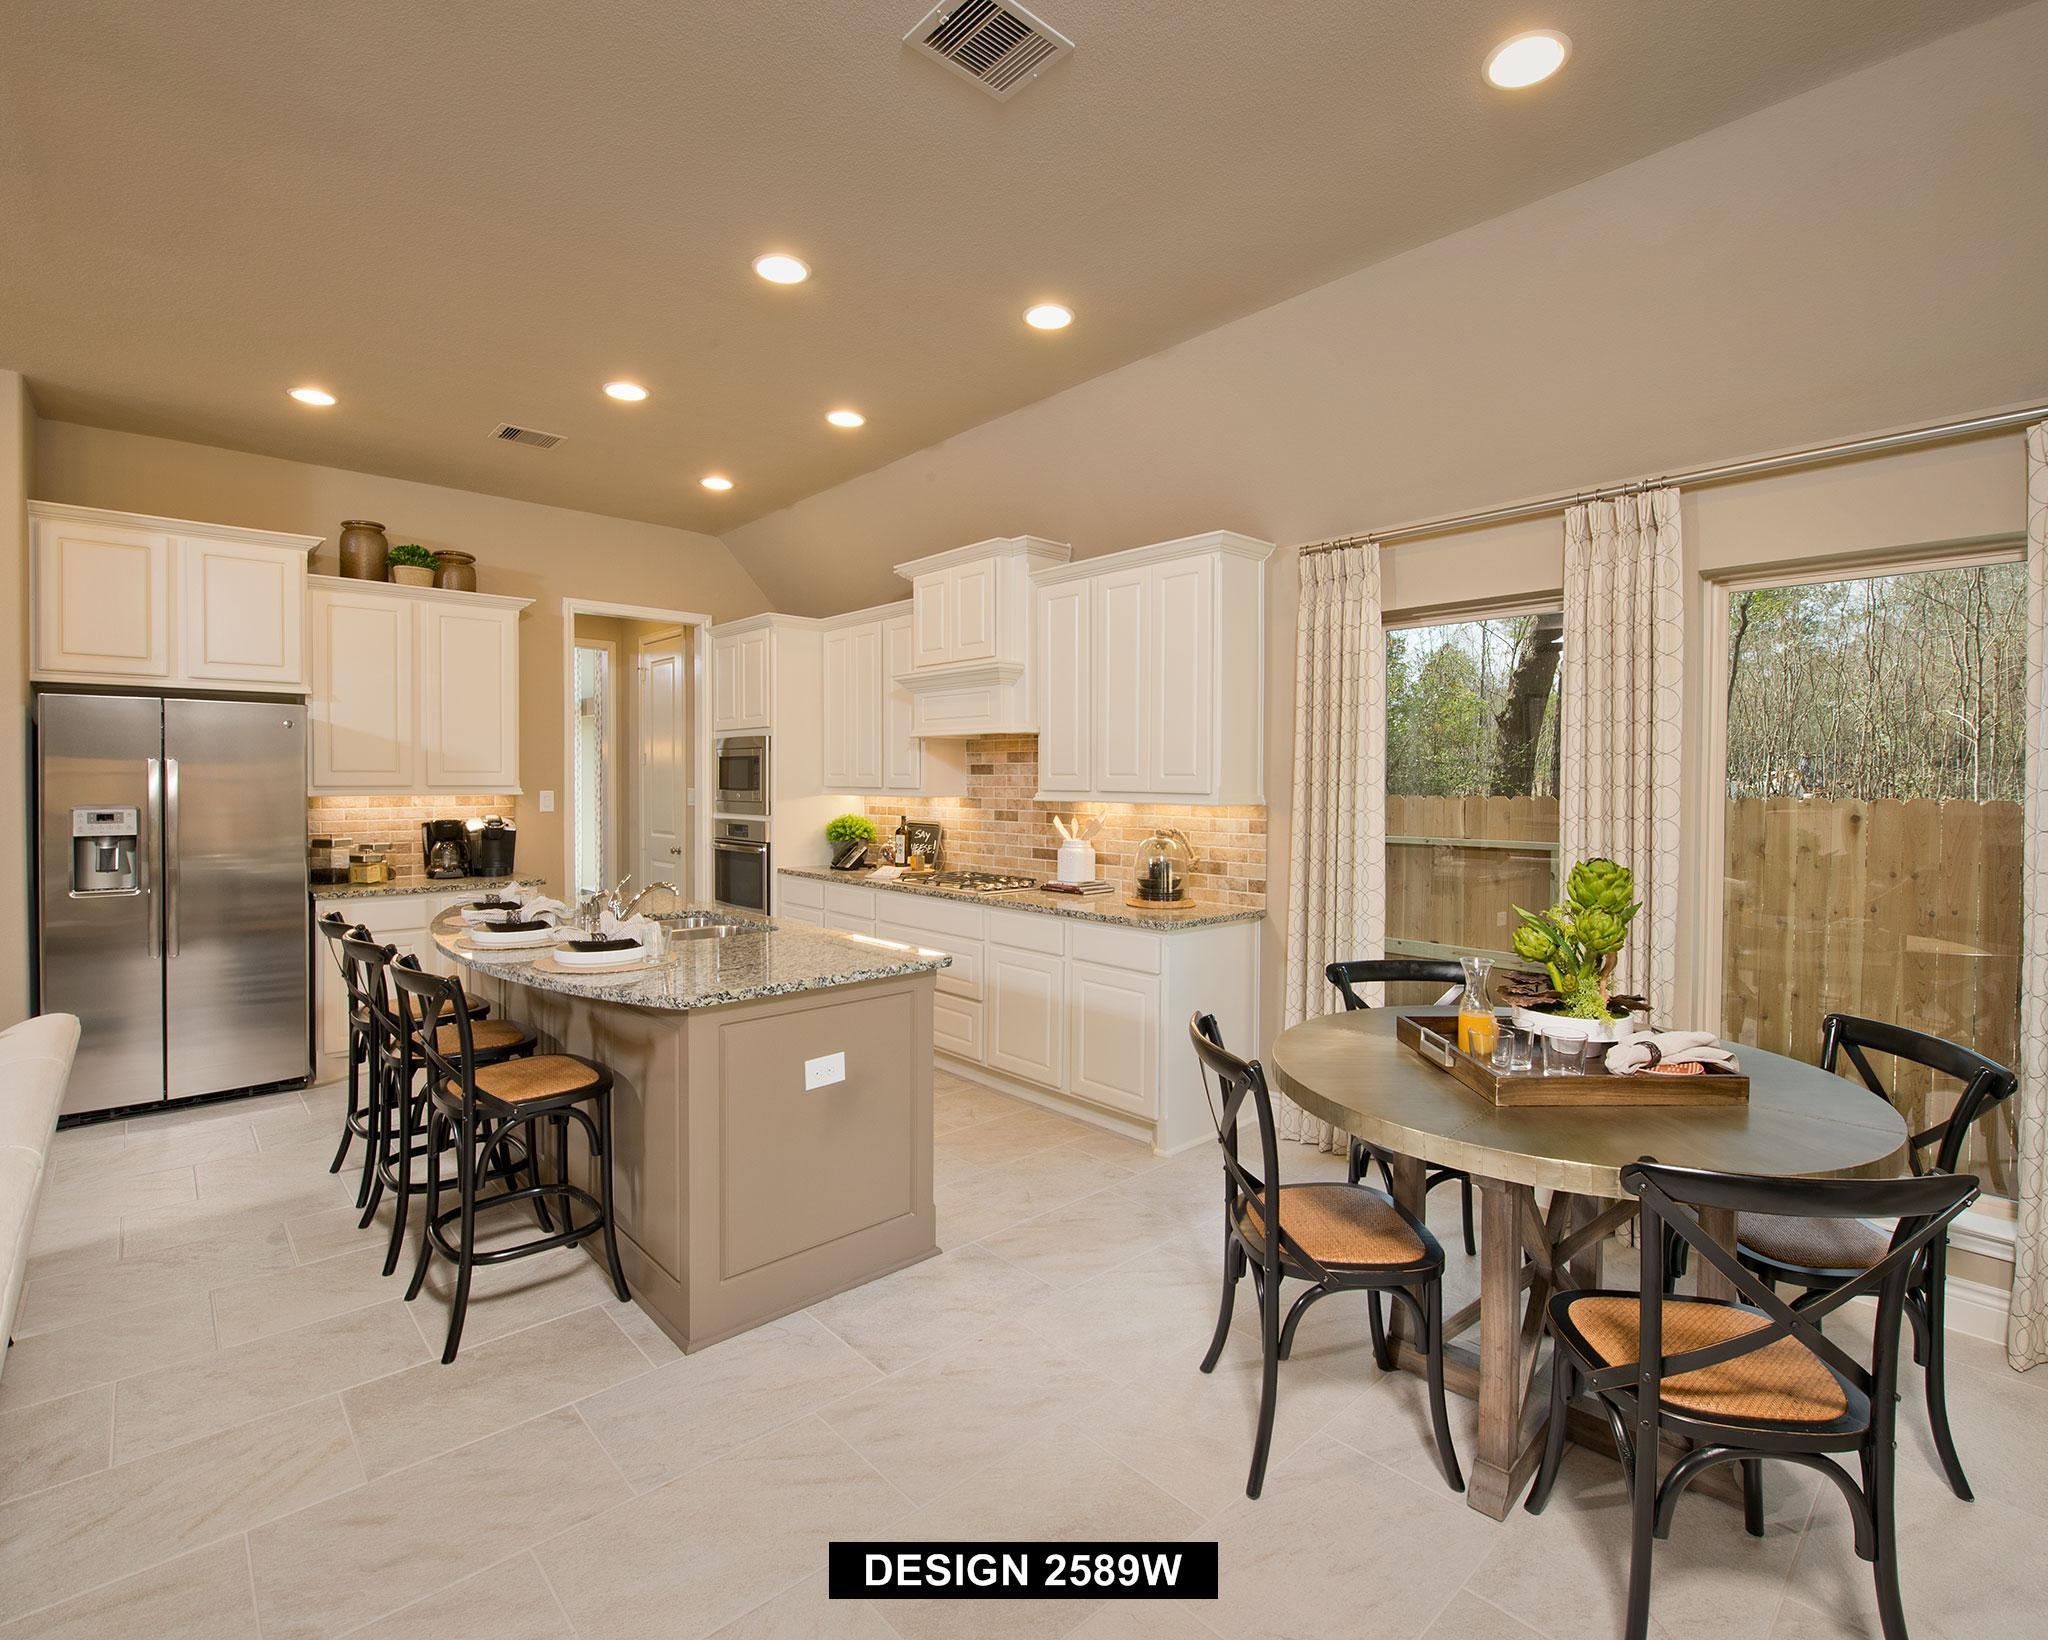 Kitchen featured in the 2589W By Perry Homes in Houston, TX